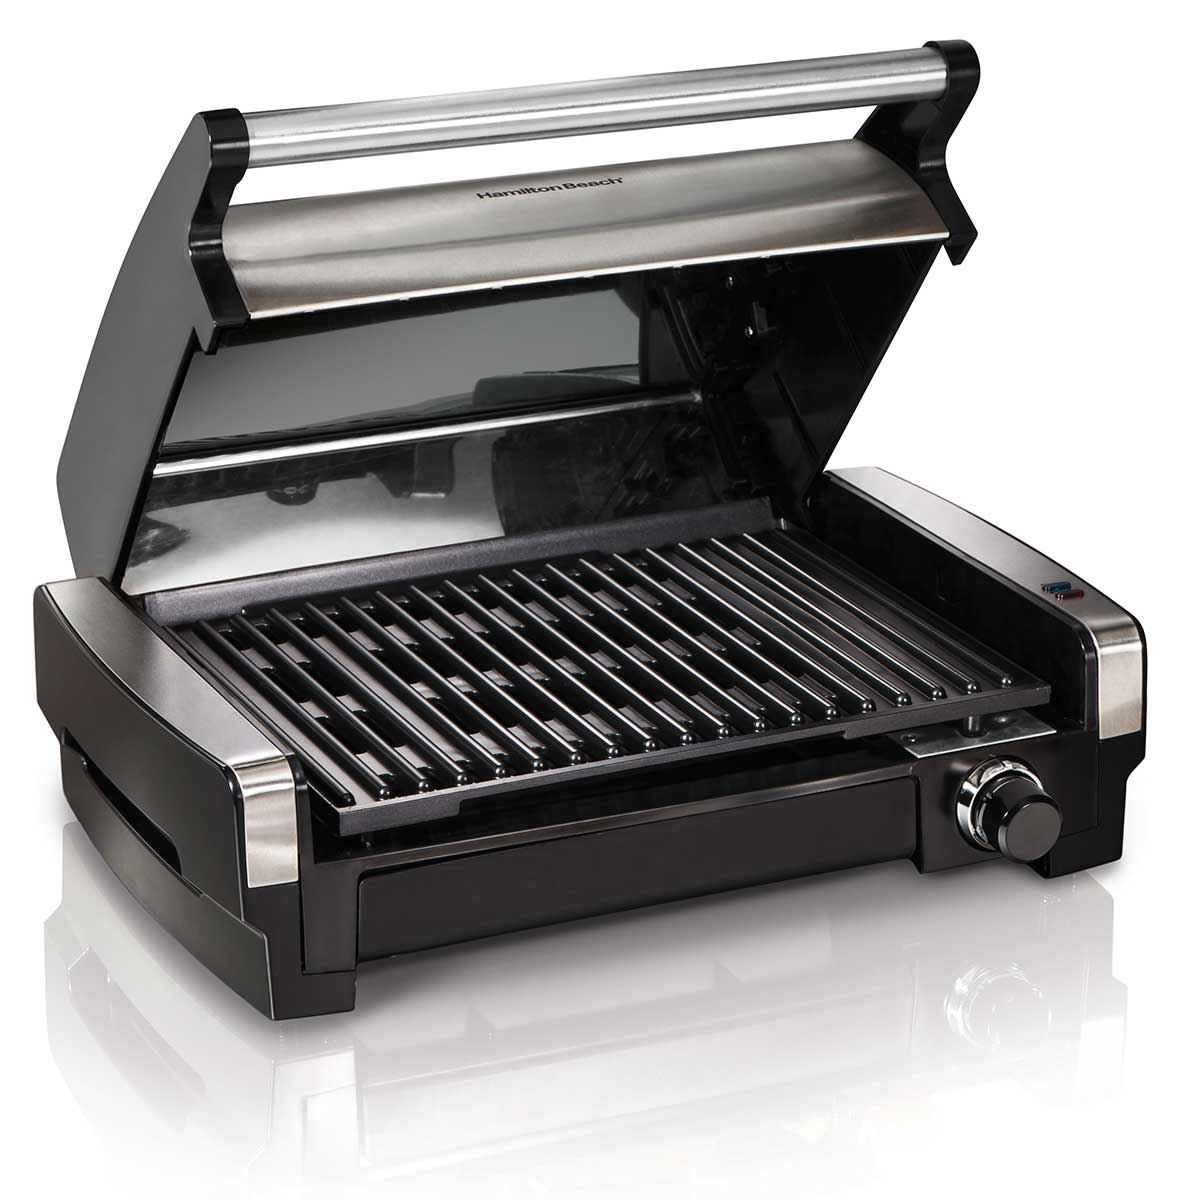 Searing Grill (25360)